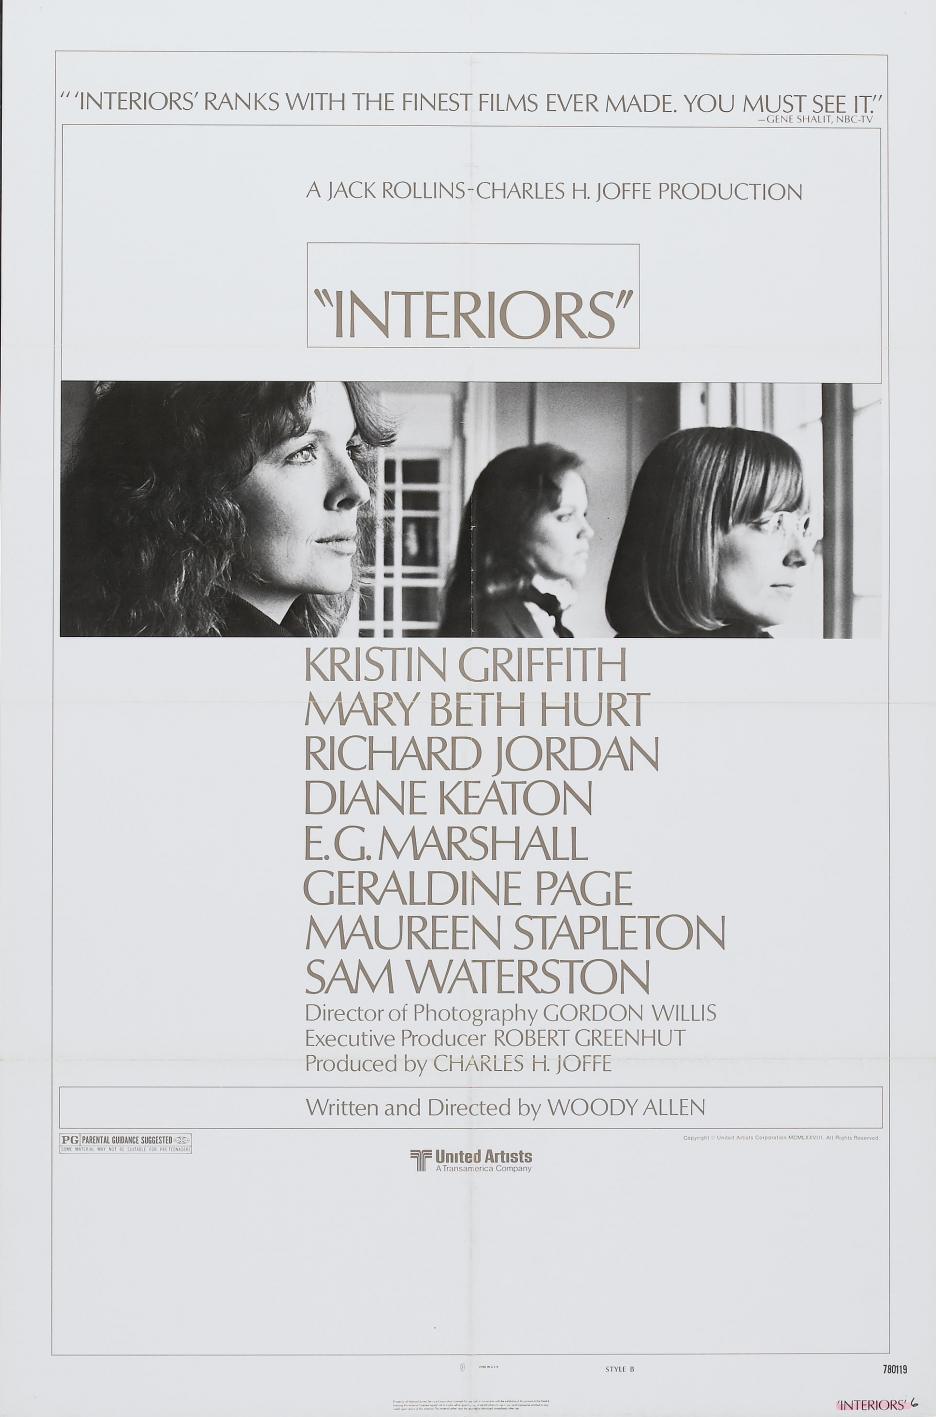 cinematographer gordon willis would use that title for his only directorial effort in 1980 it was diane keaton who suggest the title interiors